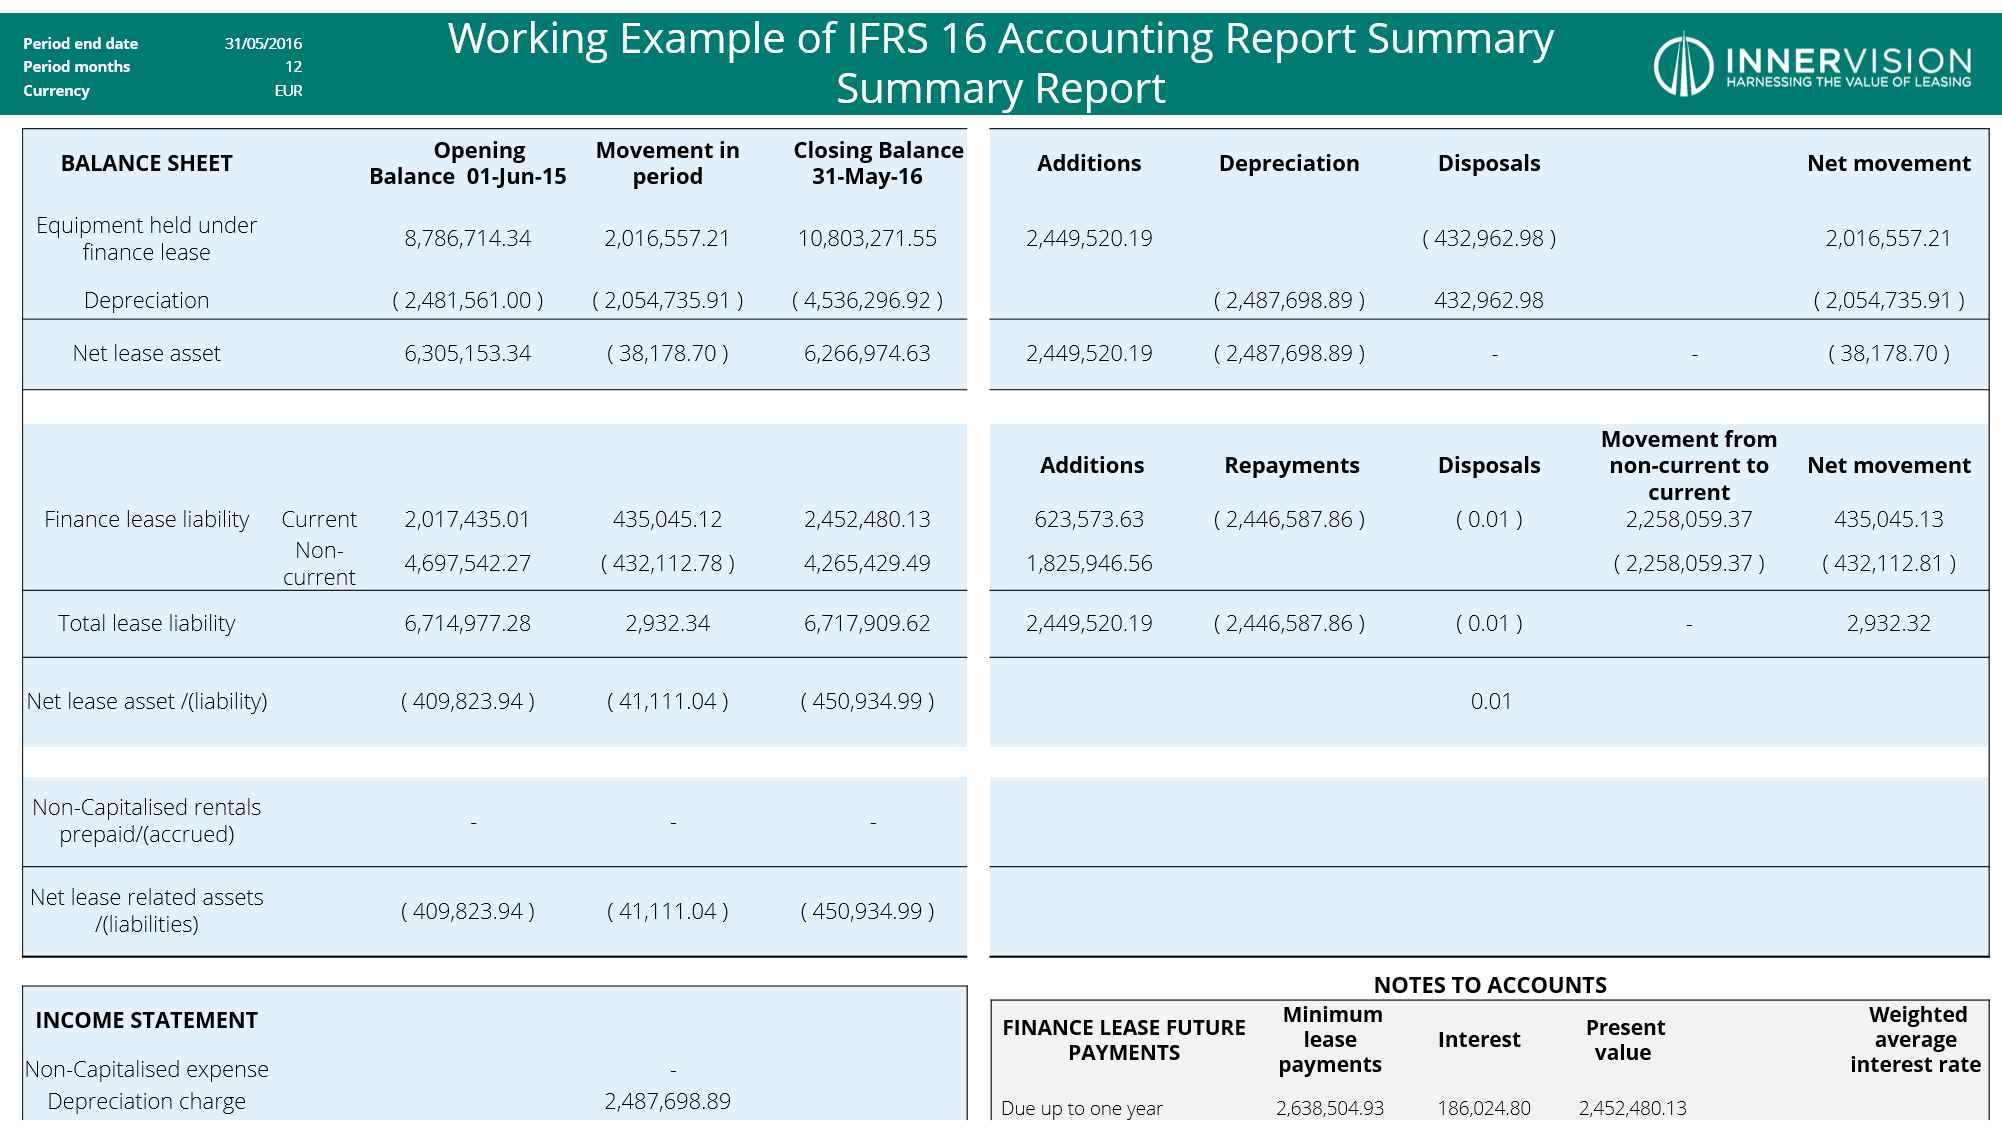 Working_Example_of_IFRS_16_Accounting_Report_Summary_-_Summary_Report1.png